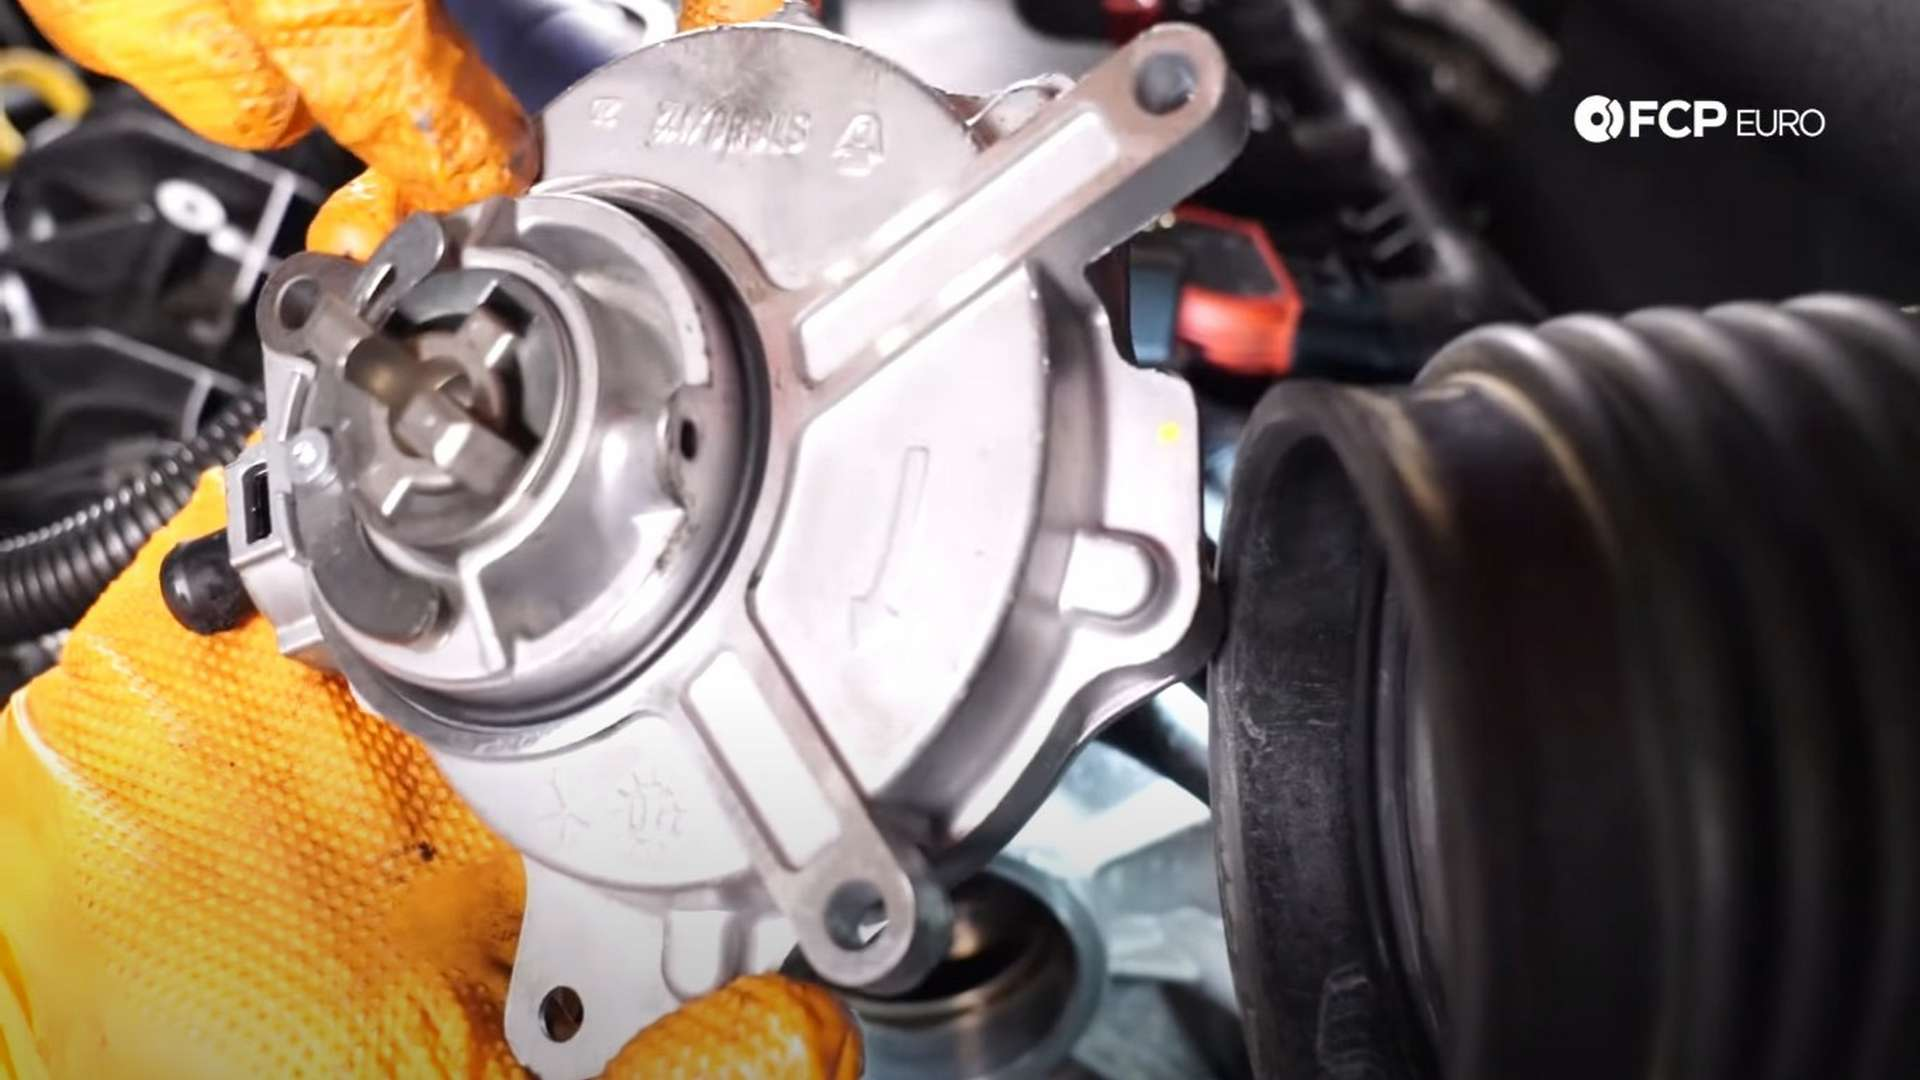 How To Replace The Brake Vacuum Pump On A Volkswagen Mk5 GTI (Audi A3, A4, VW Jetta, & More)